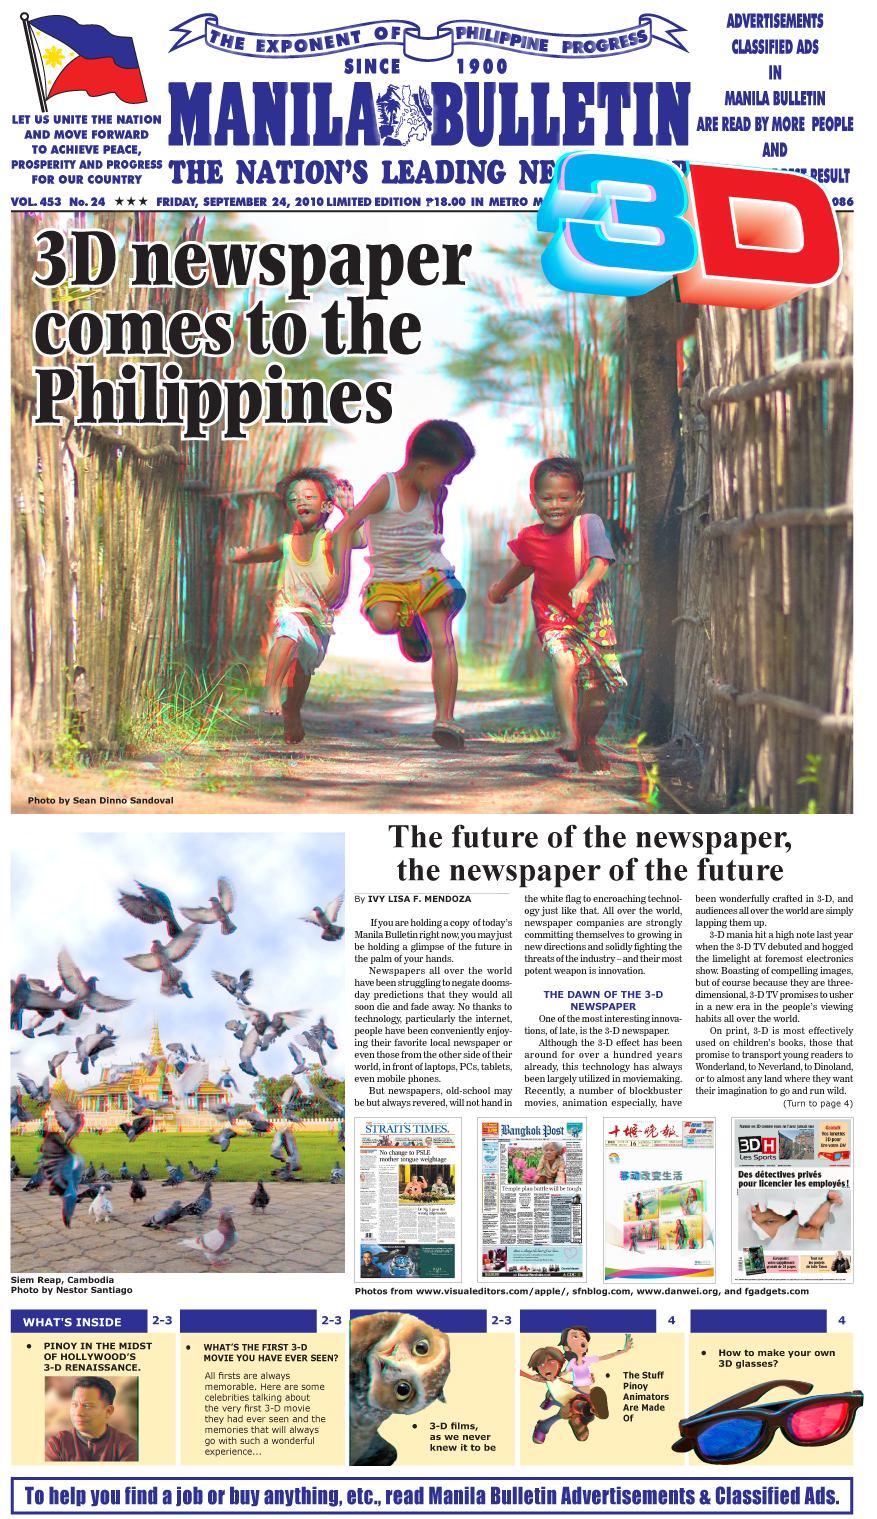 Manila Bulletin launches 3D edition and e-paper (best viewed